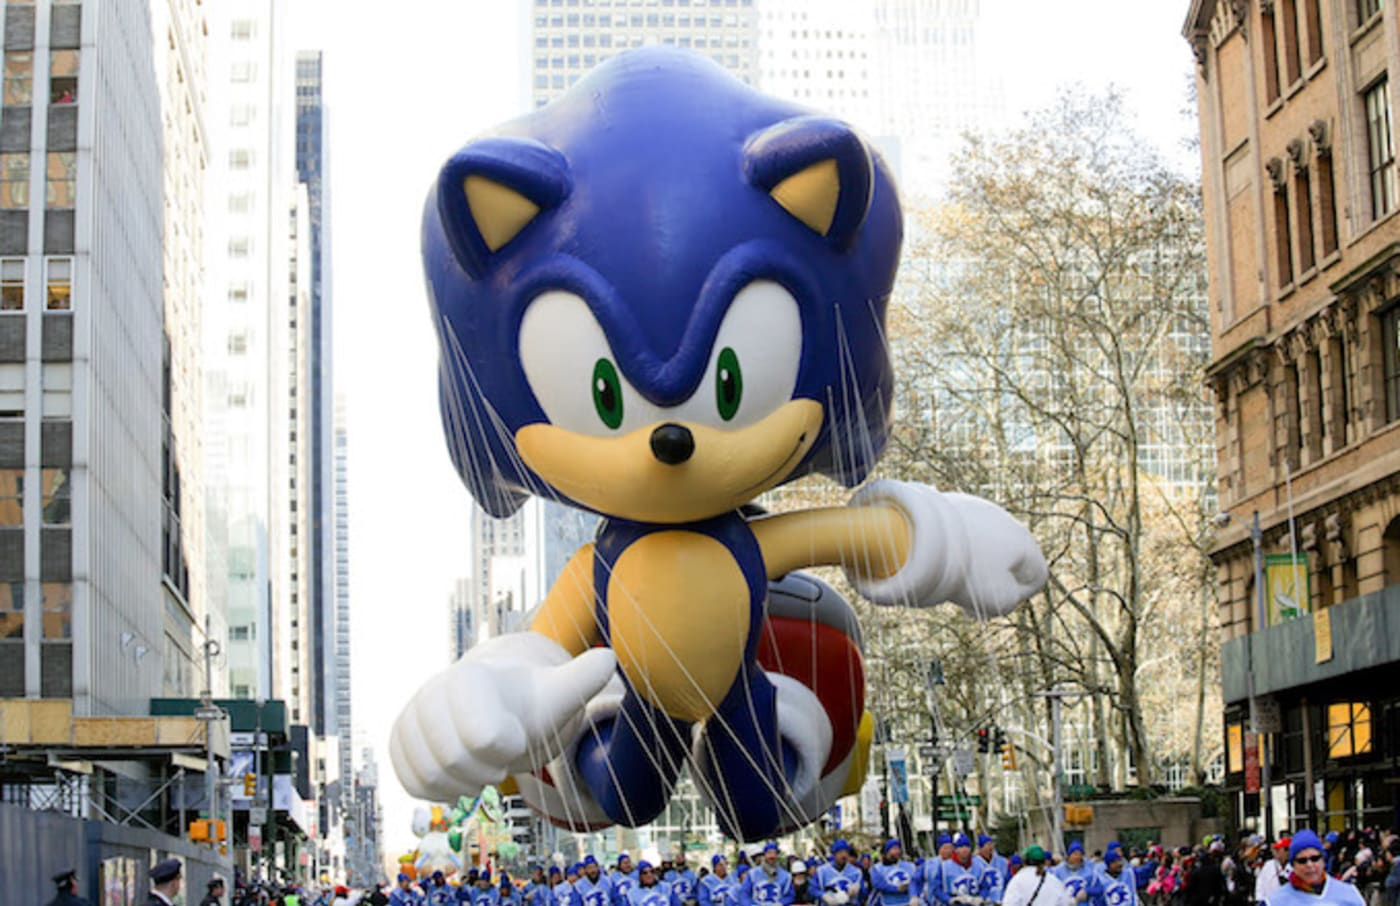 The Sonic the Hedgehog balloon is seen during the 87th Annual Macy's Thanksgiving Day Parade/